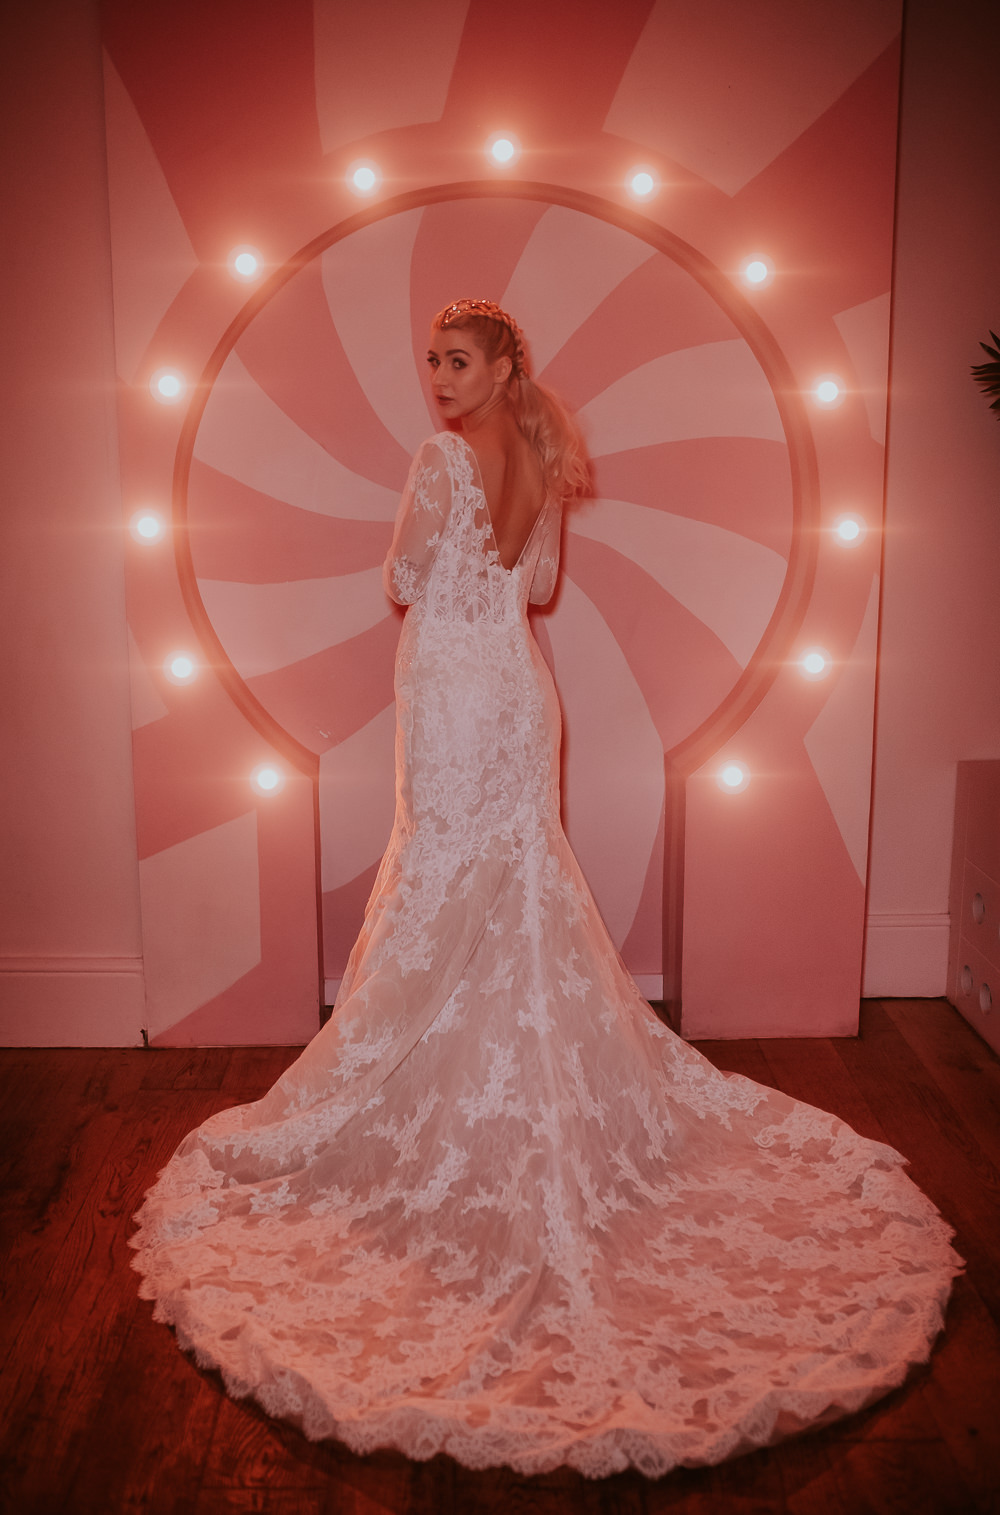 Bride Bridal Dress Gown Lace Fit Flare Lace Sleeves Modern Pink Wedding Ideas Aurora Grey Photography